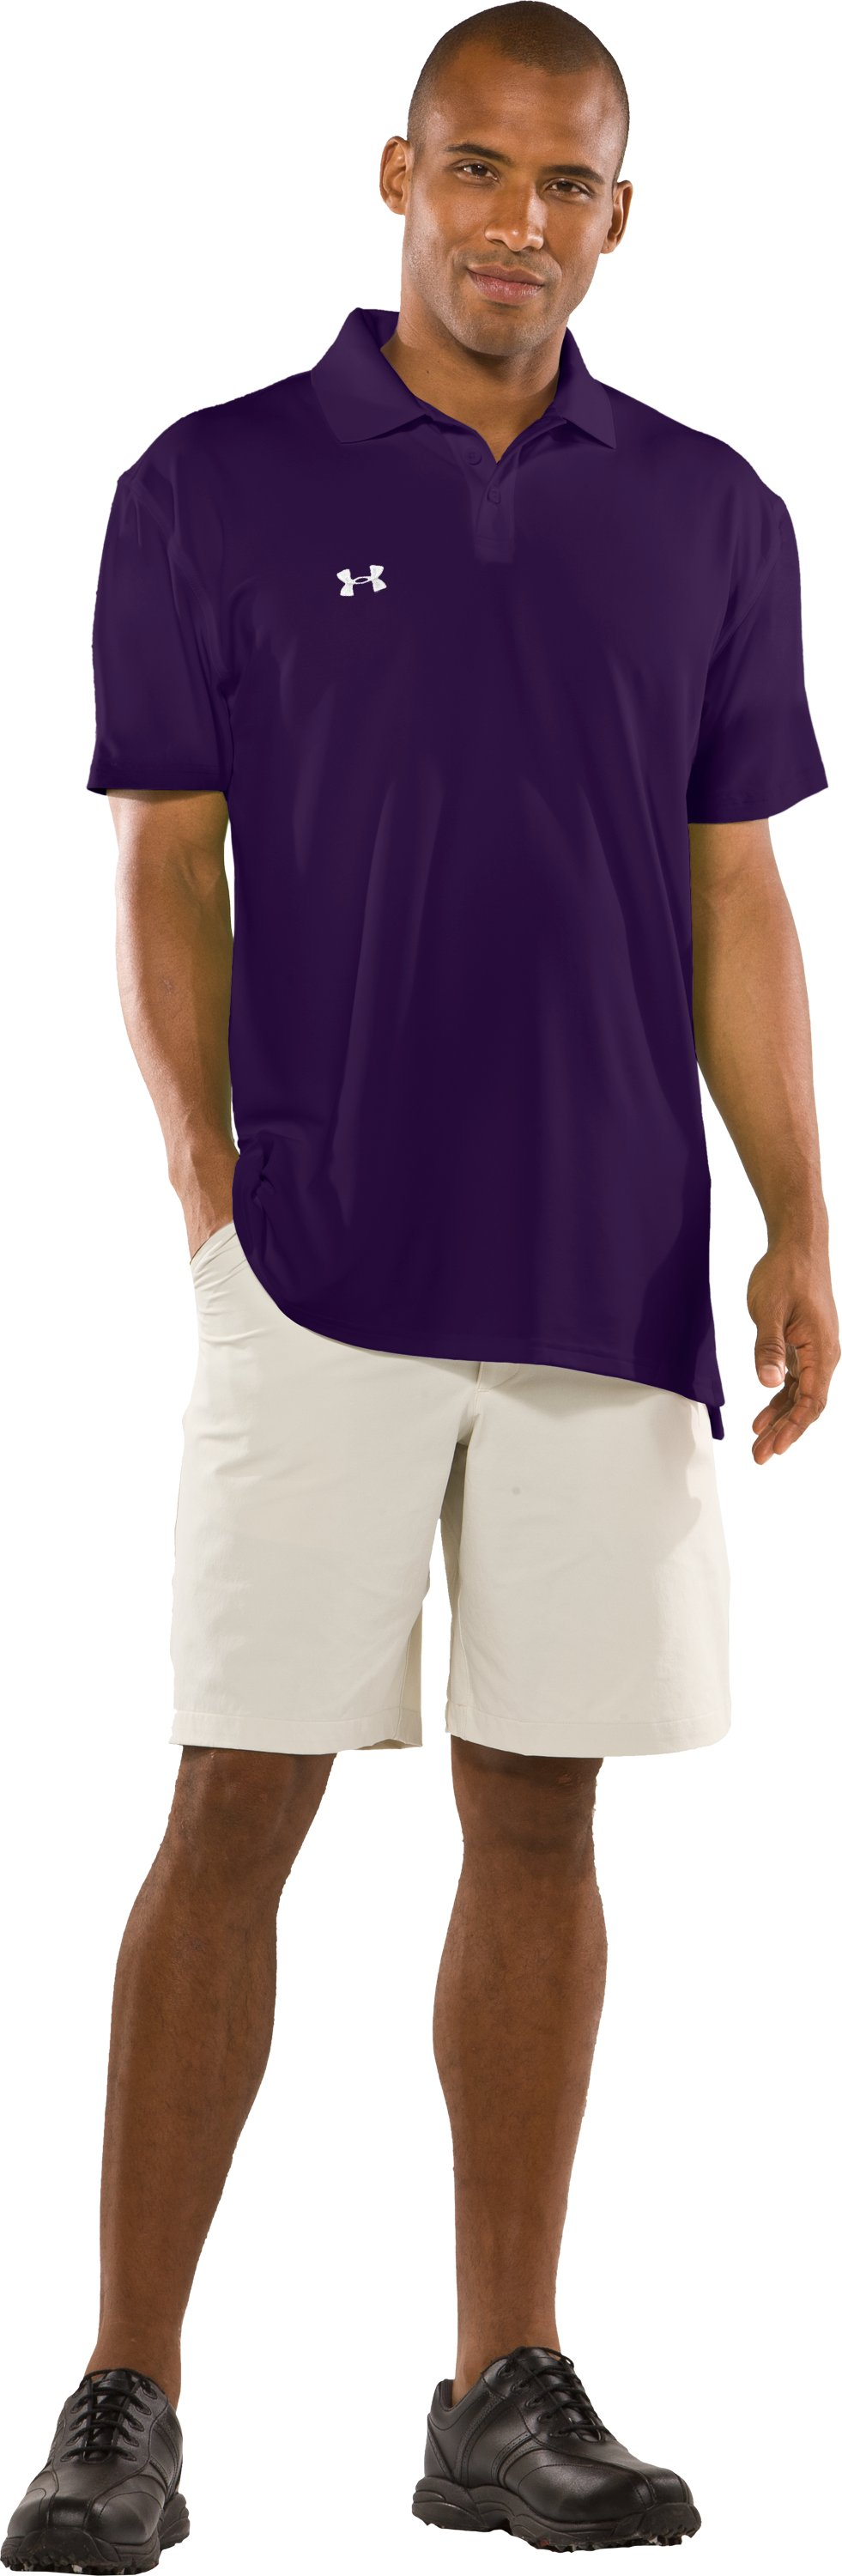 Men's UA Performance Short Sleeve Team Golf Polo, Purple